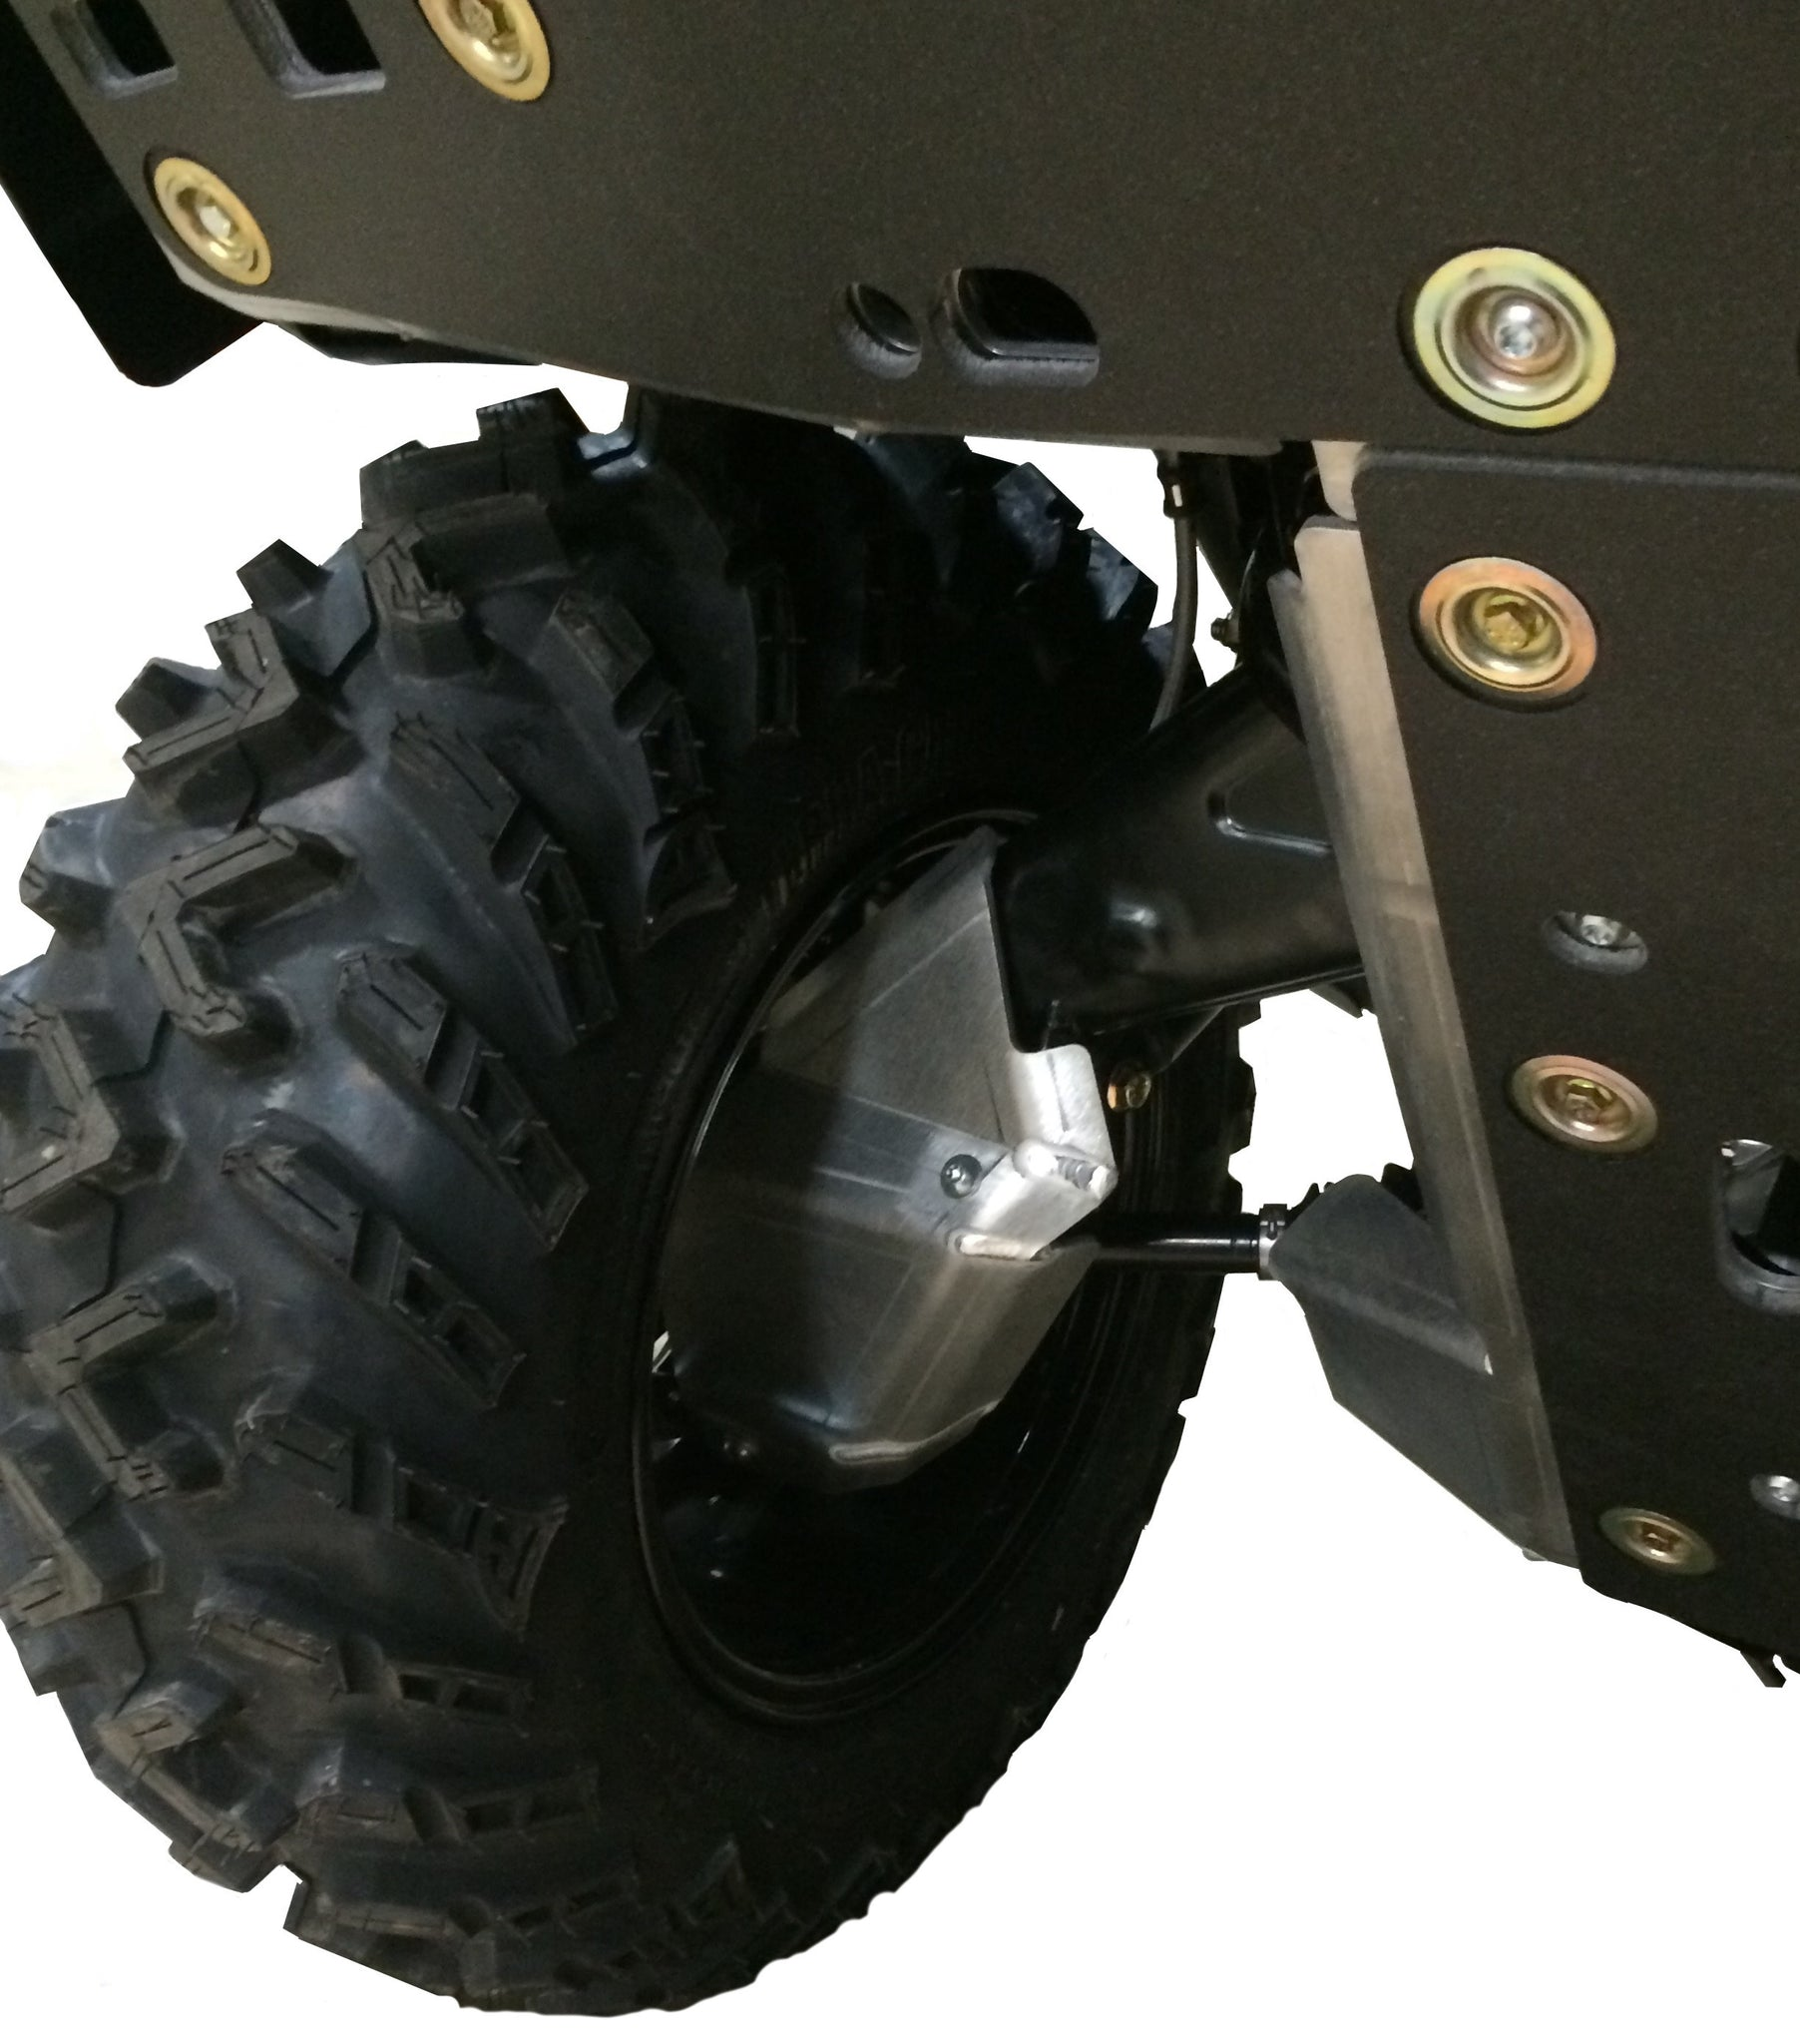 4-Piece A-Arm & CV Boot Guard Set, 2017-2018 Can-Am Outlander 450